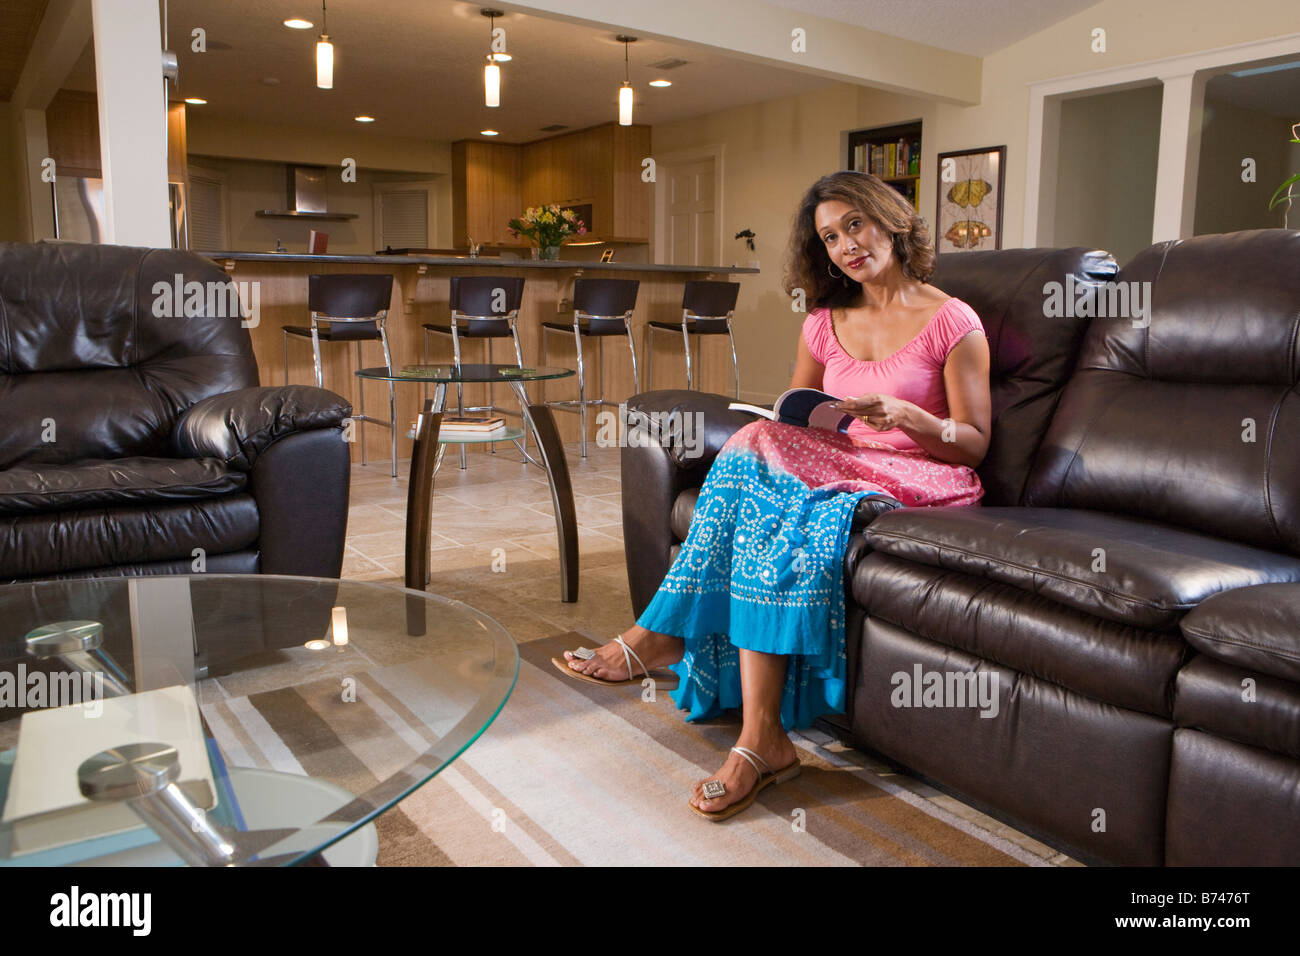 Delightful Mid Adult Indian Woman Sitting On Sofa With Book In Living Room